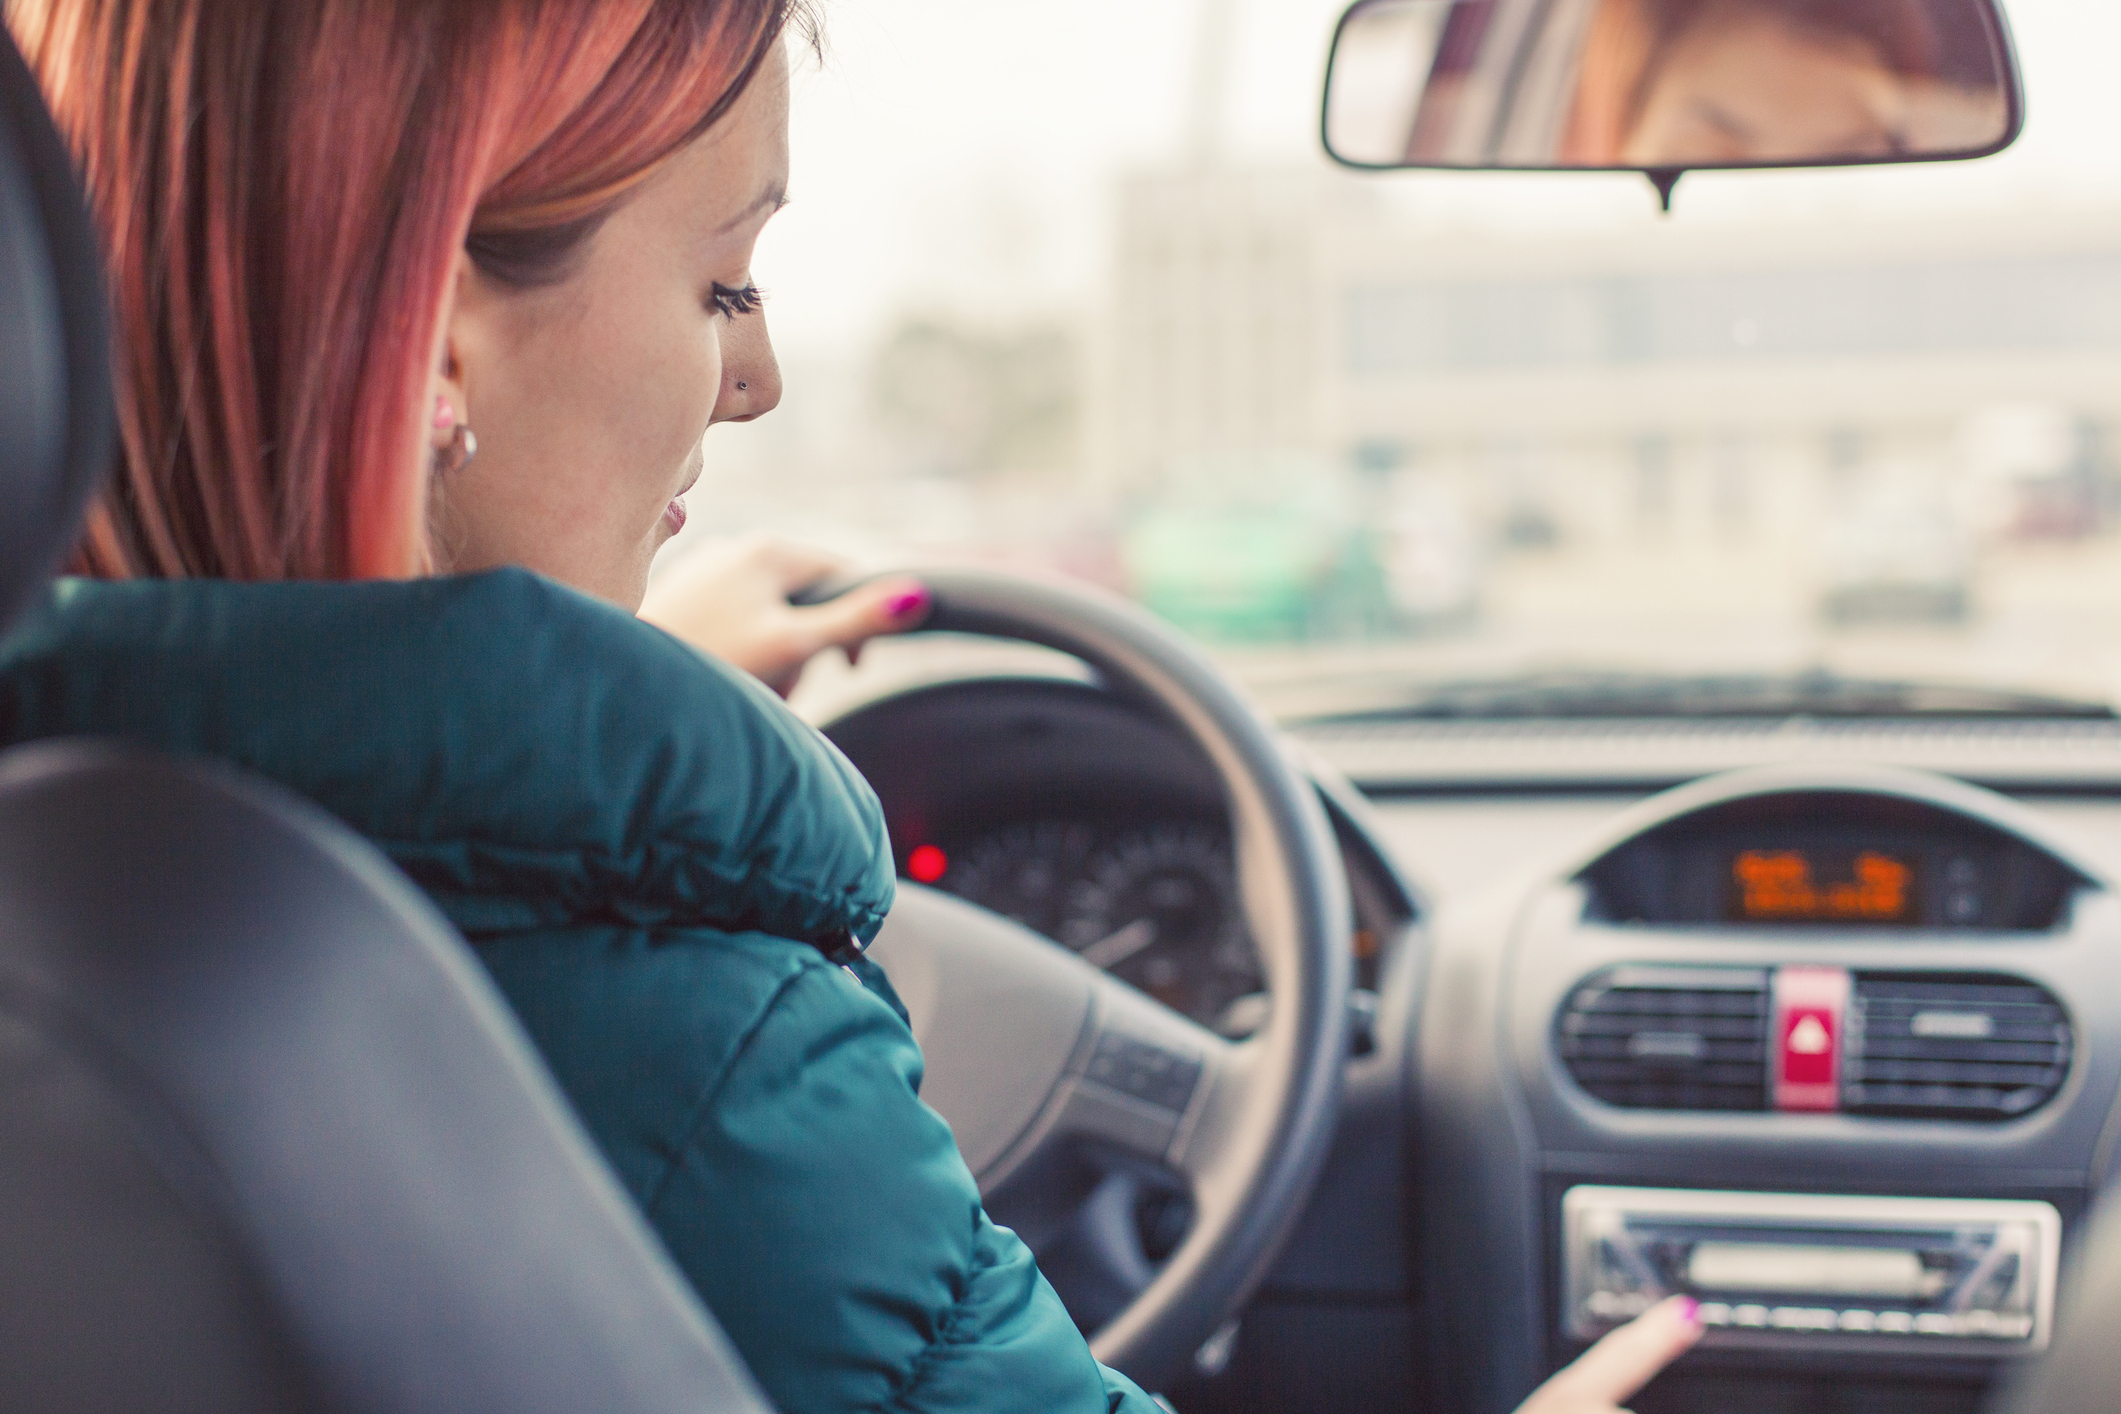 Woman in car pushing radio buttons